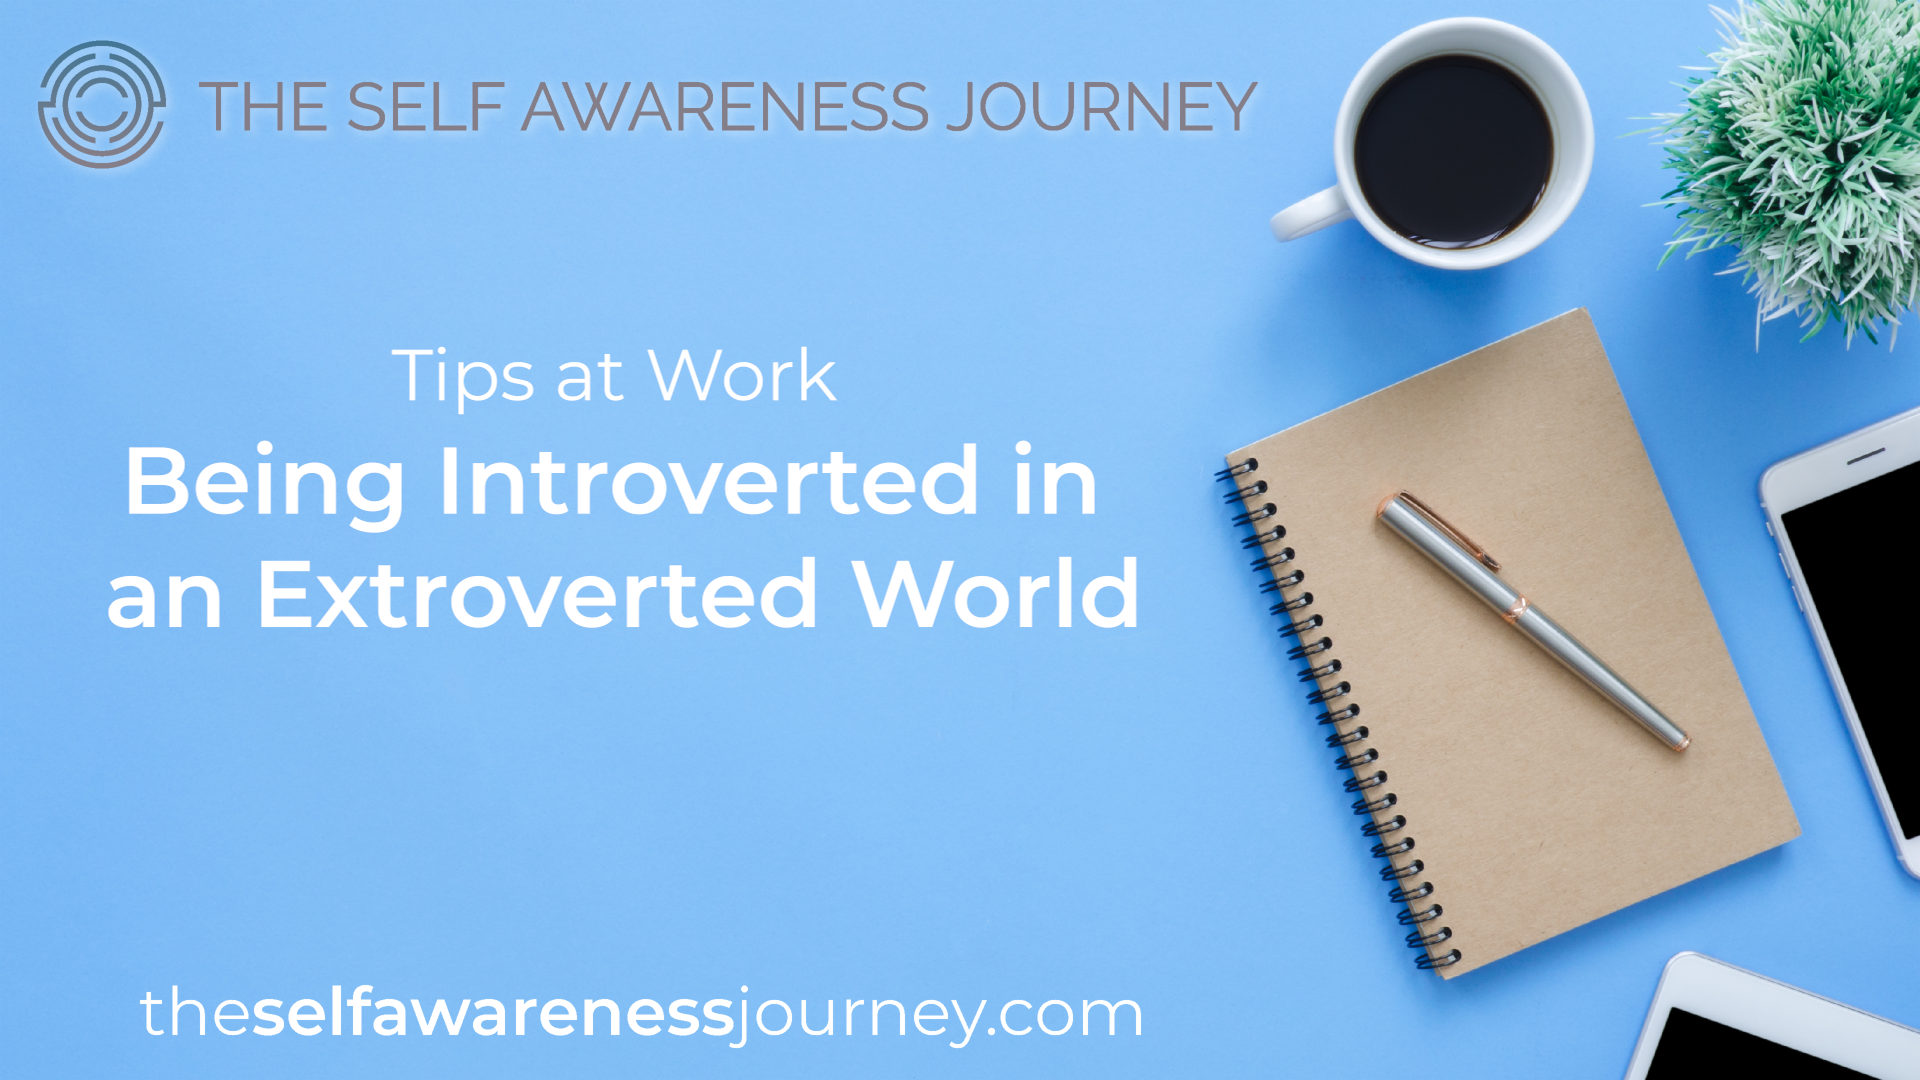 Being Introverted in an Extroverted World